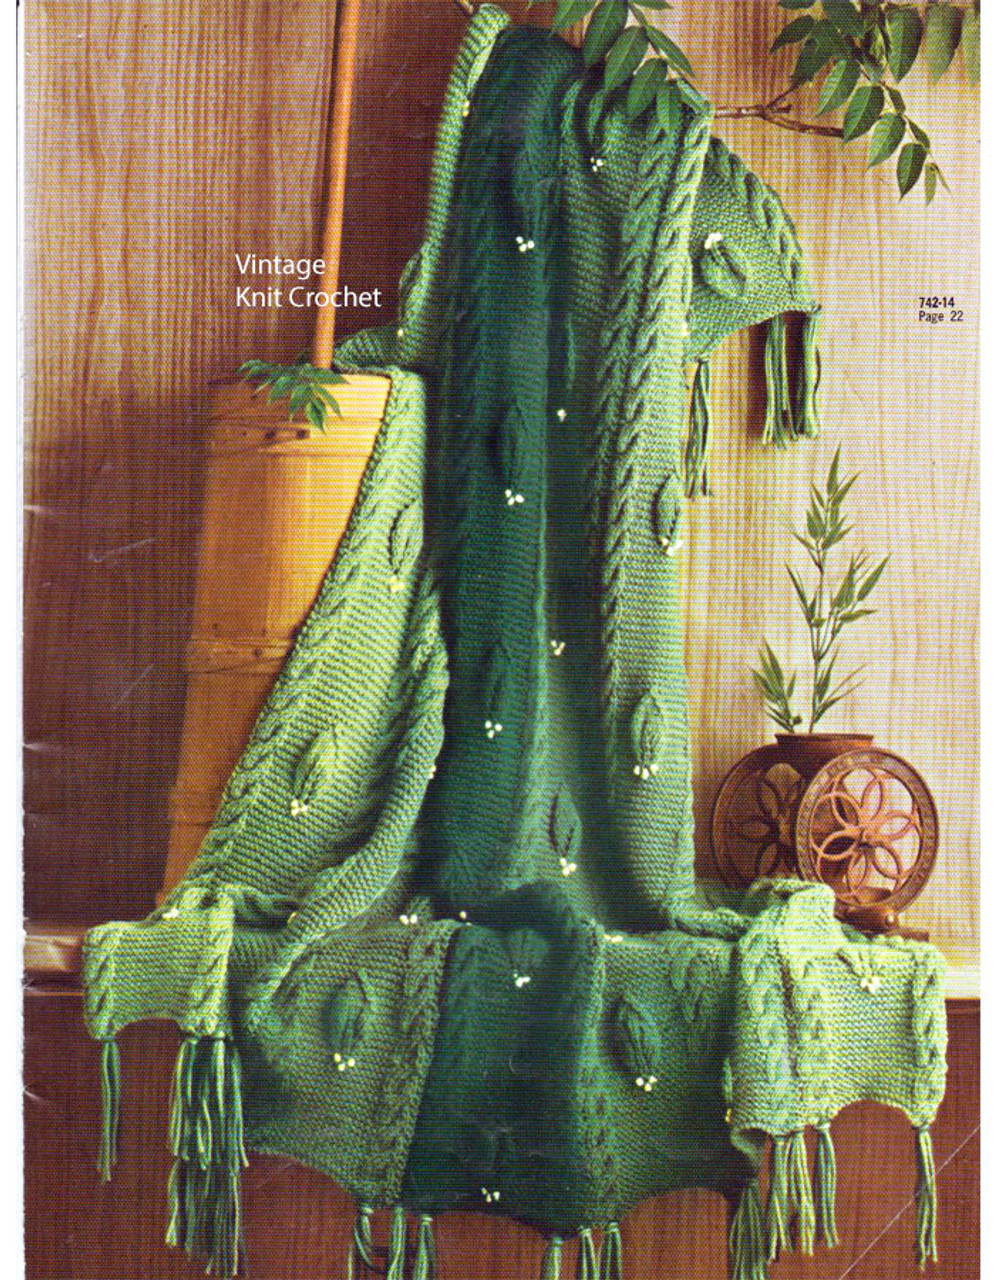 Cable Afghan Knitting Pattern, Raised Leaf, No 742-14